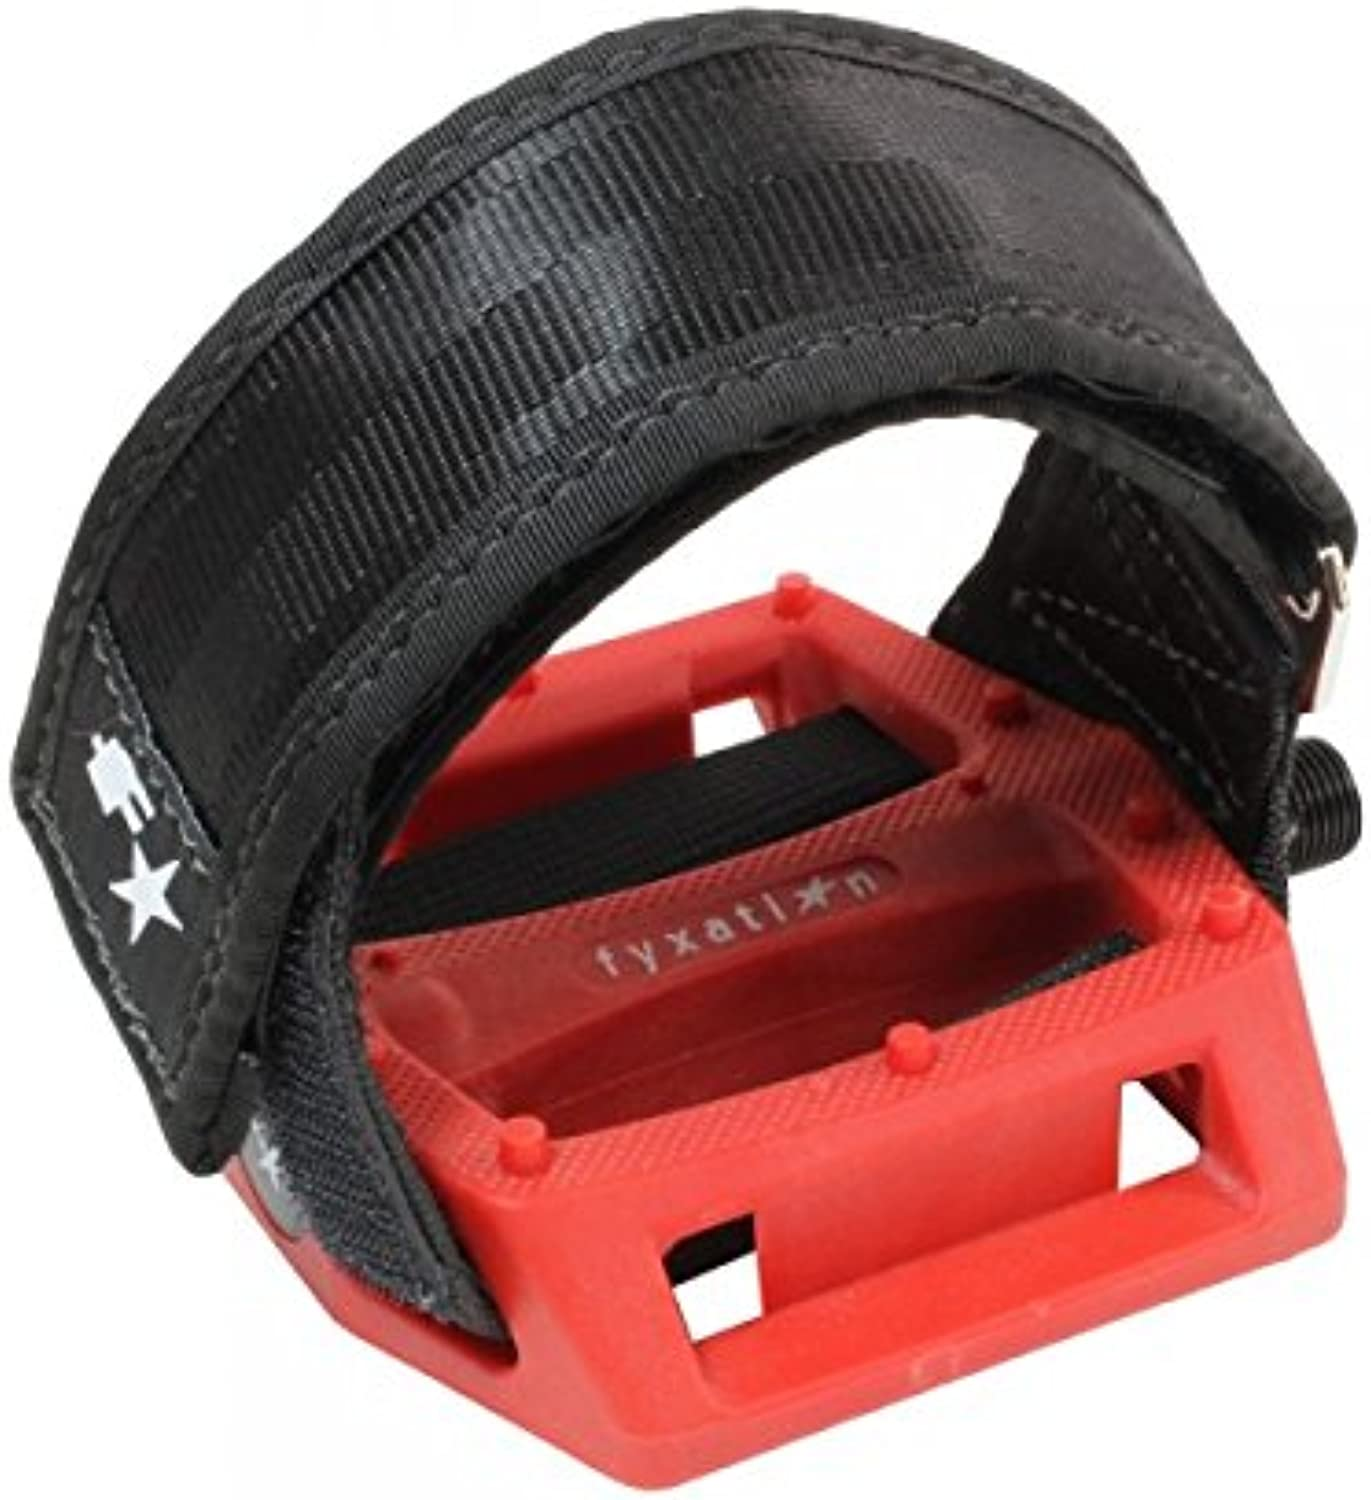 Fyxation Gates Pedal Strap Kit with Red Pedal and Black Straps